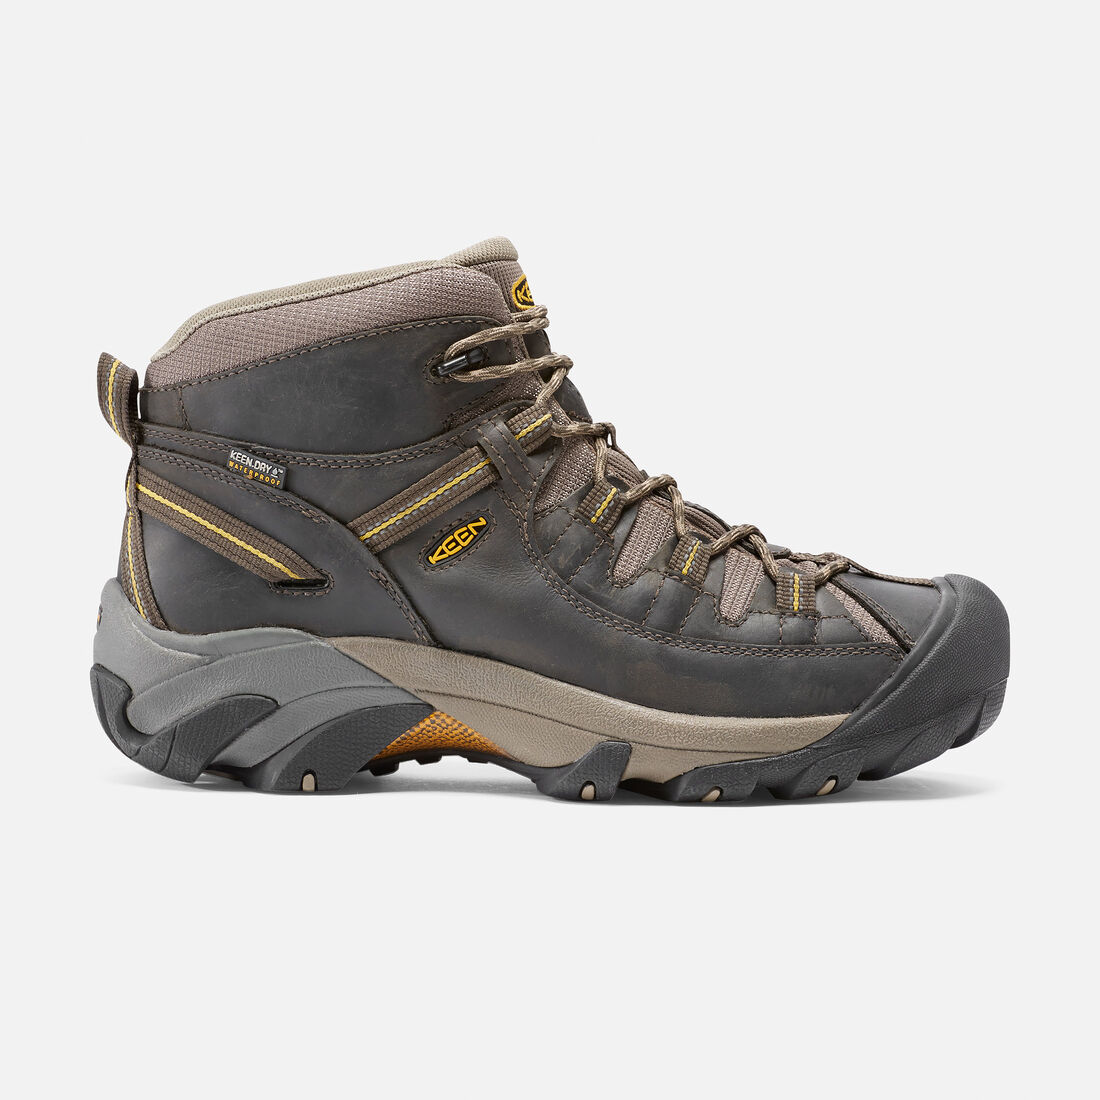 5463c43760a Men's Targhee II Waterproof Mid | KEEN Footwear